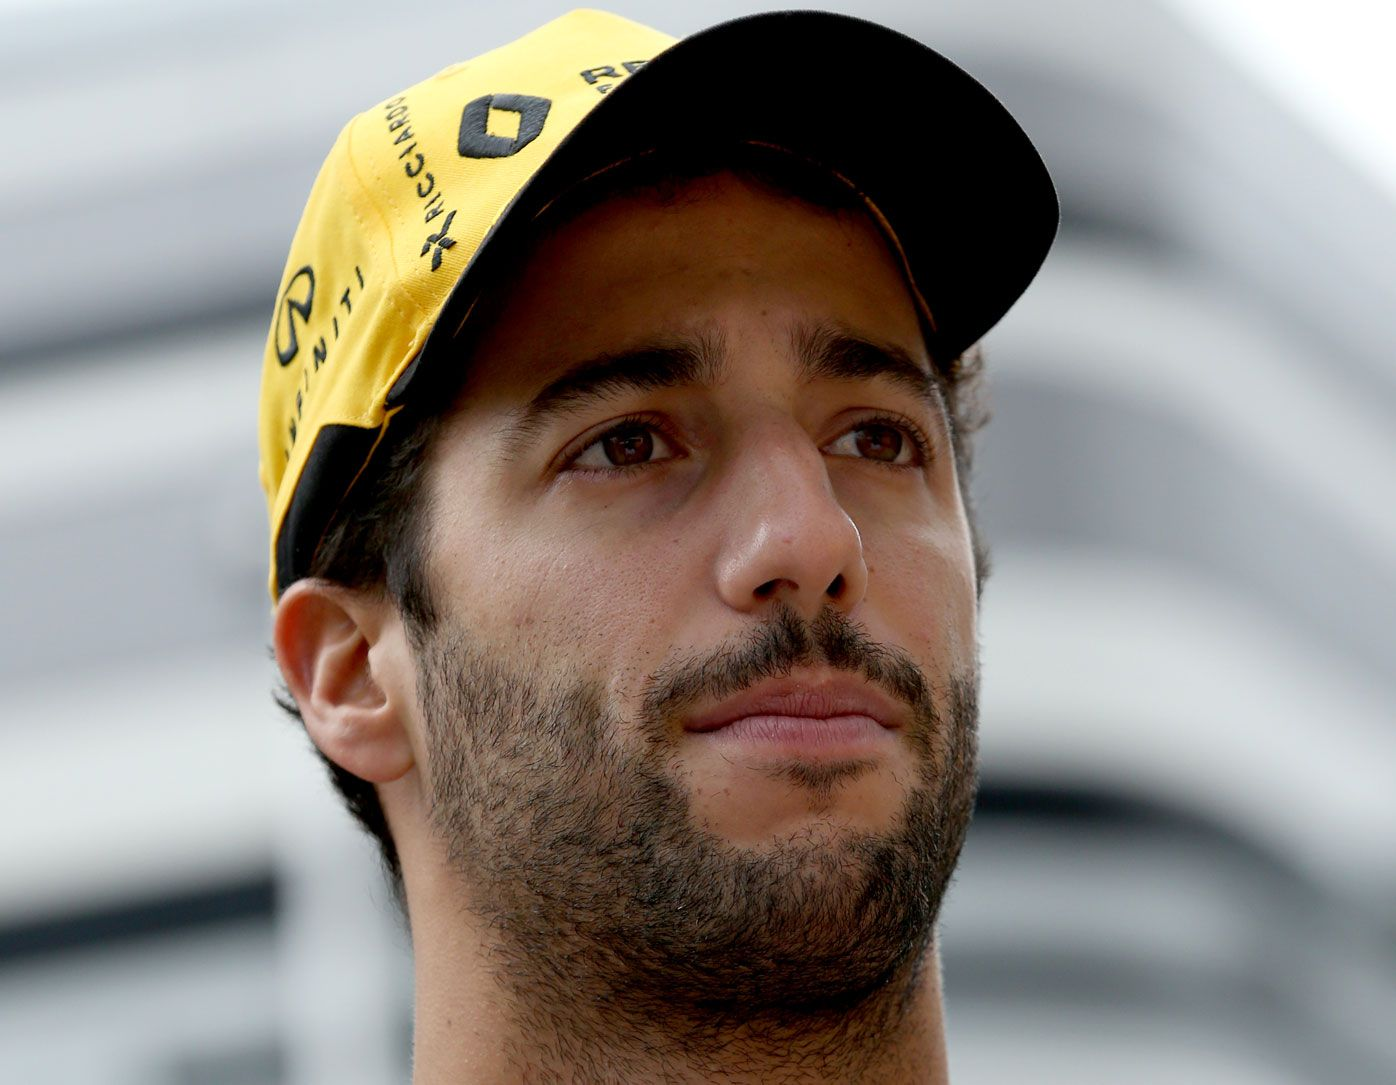 Daniel Ricciardo talked to Ferrari before McLaren